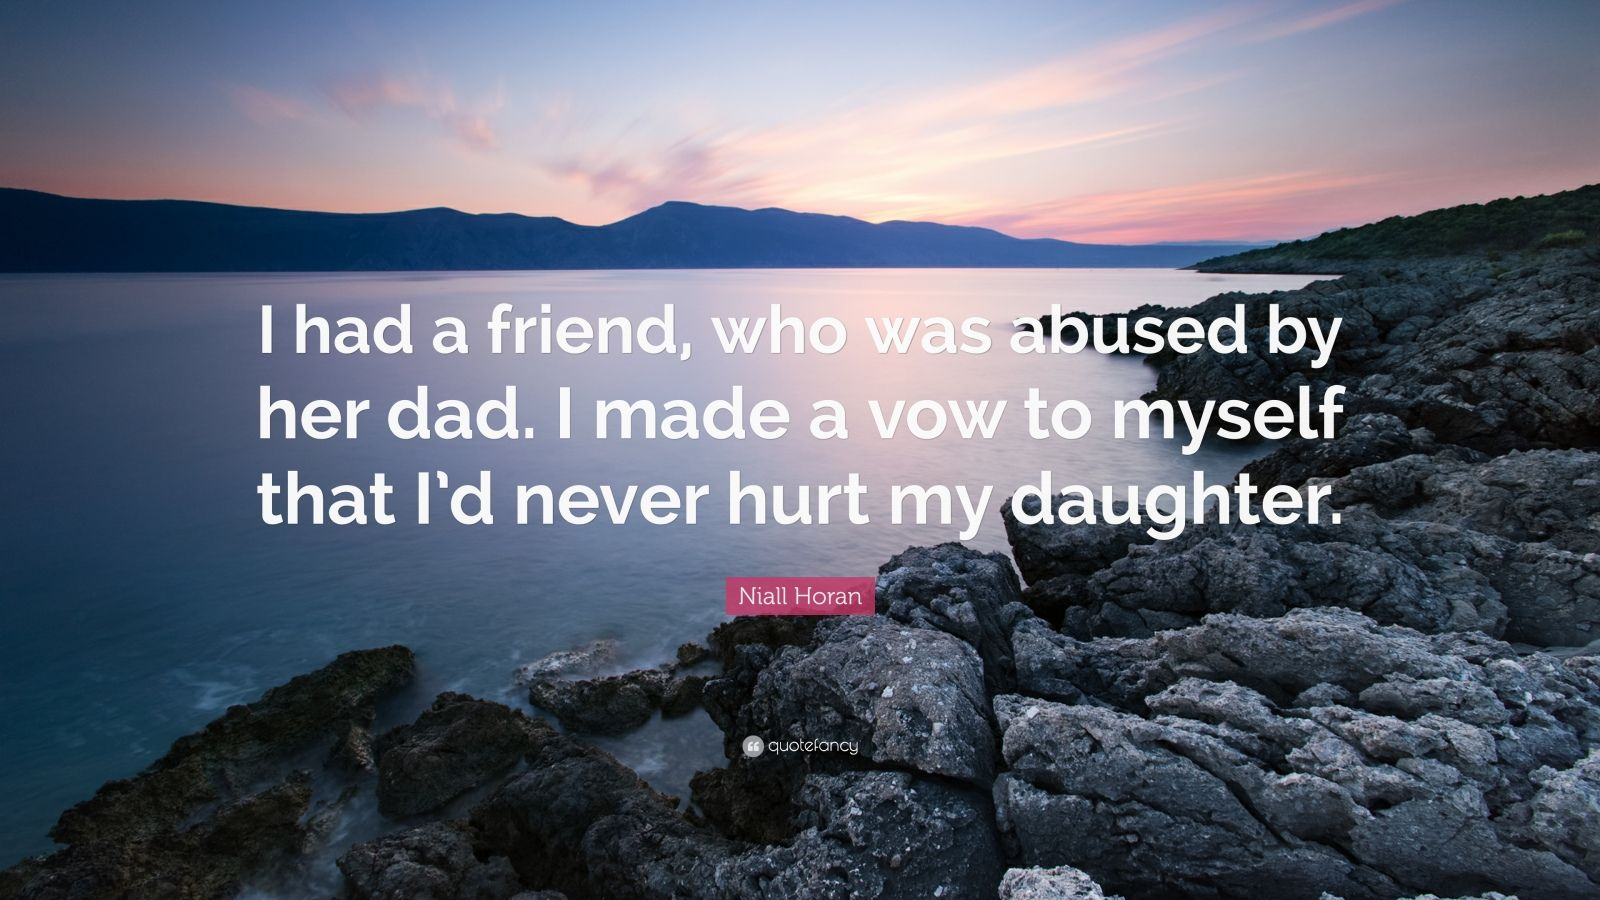 """Niall Horan Quote: """"I had a friend, who was abused by her dad. I made a vow to myself that I'd never hurt my daughter."""""""